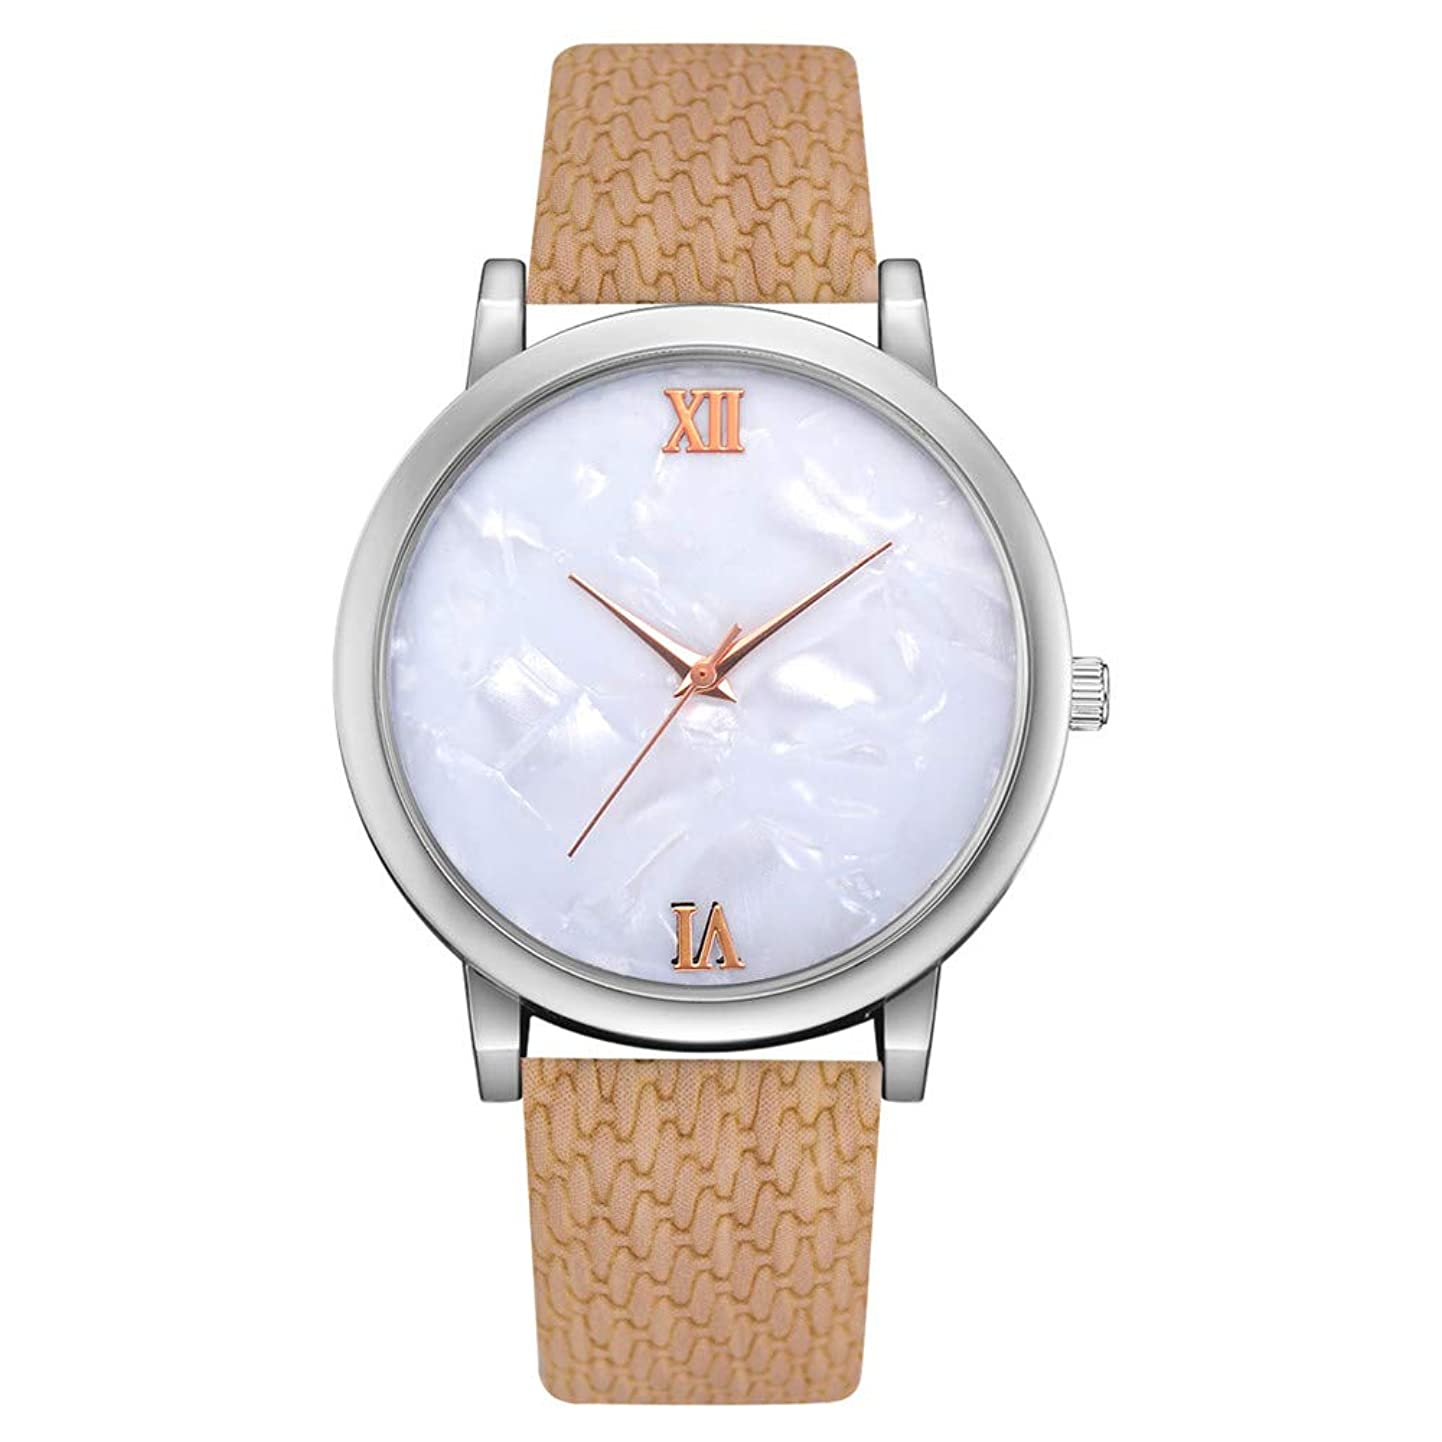 Larmly Women's Casual Quartz Mesh Belt Watch Analog Wrist Watch Jade Dial Unique Alloy creonswqujj7